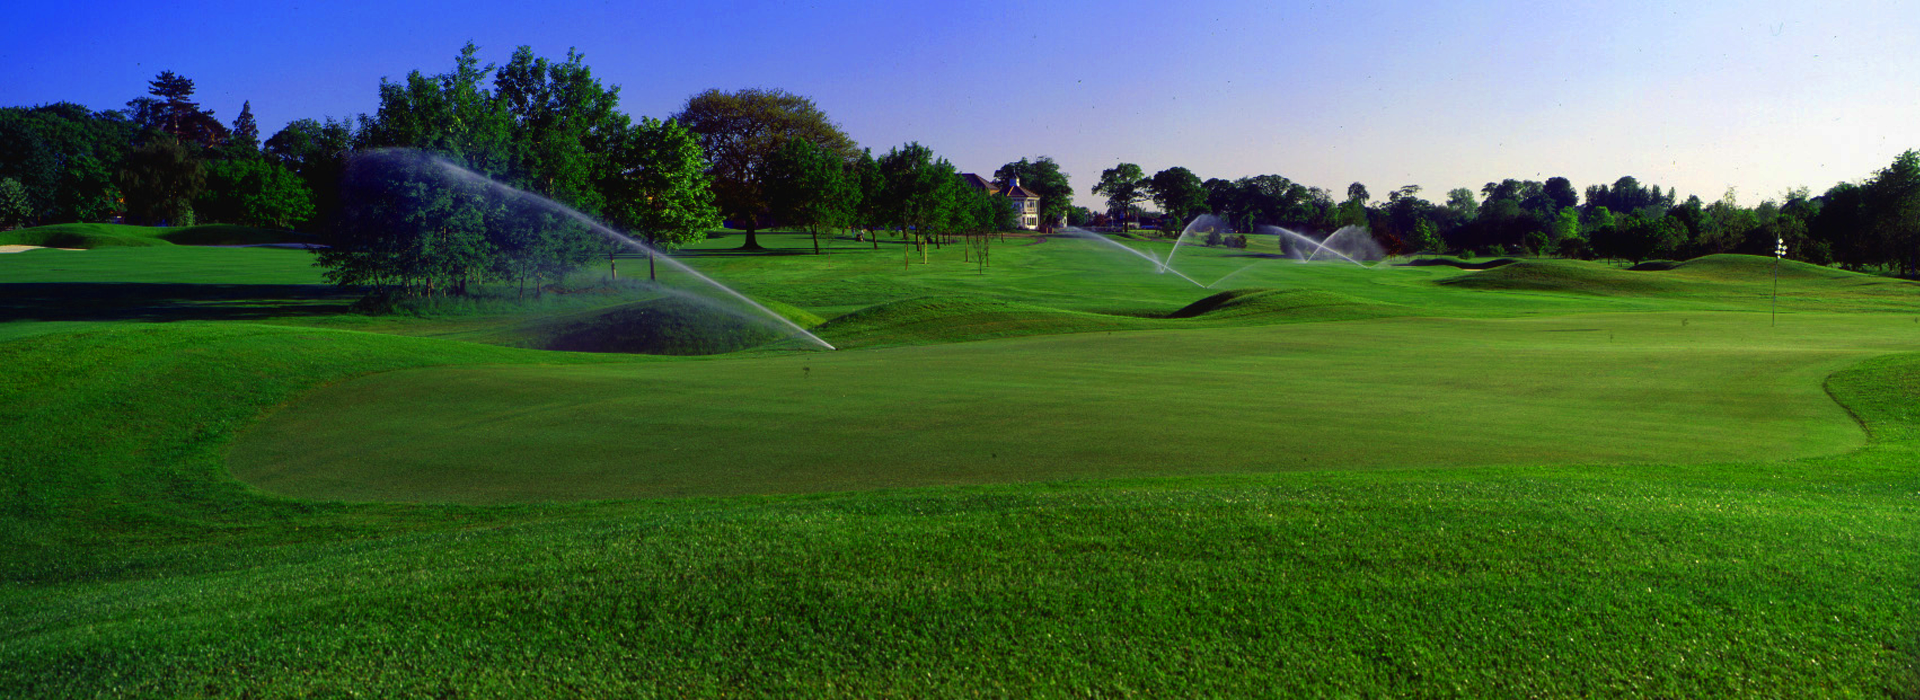 Commercial irrigation winnipeg